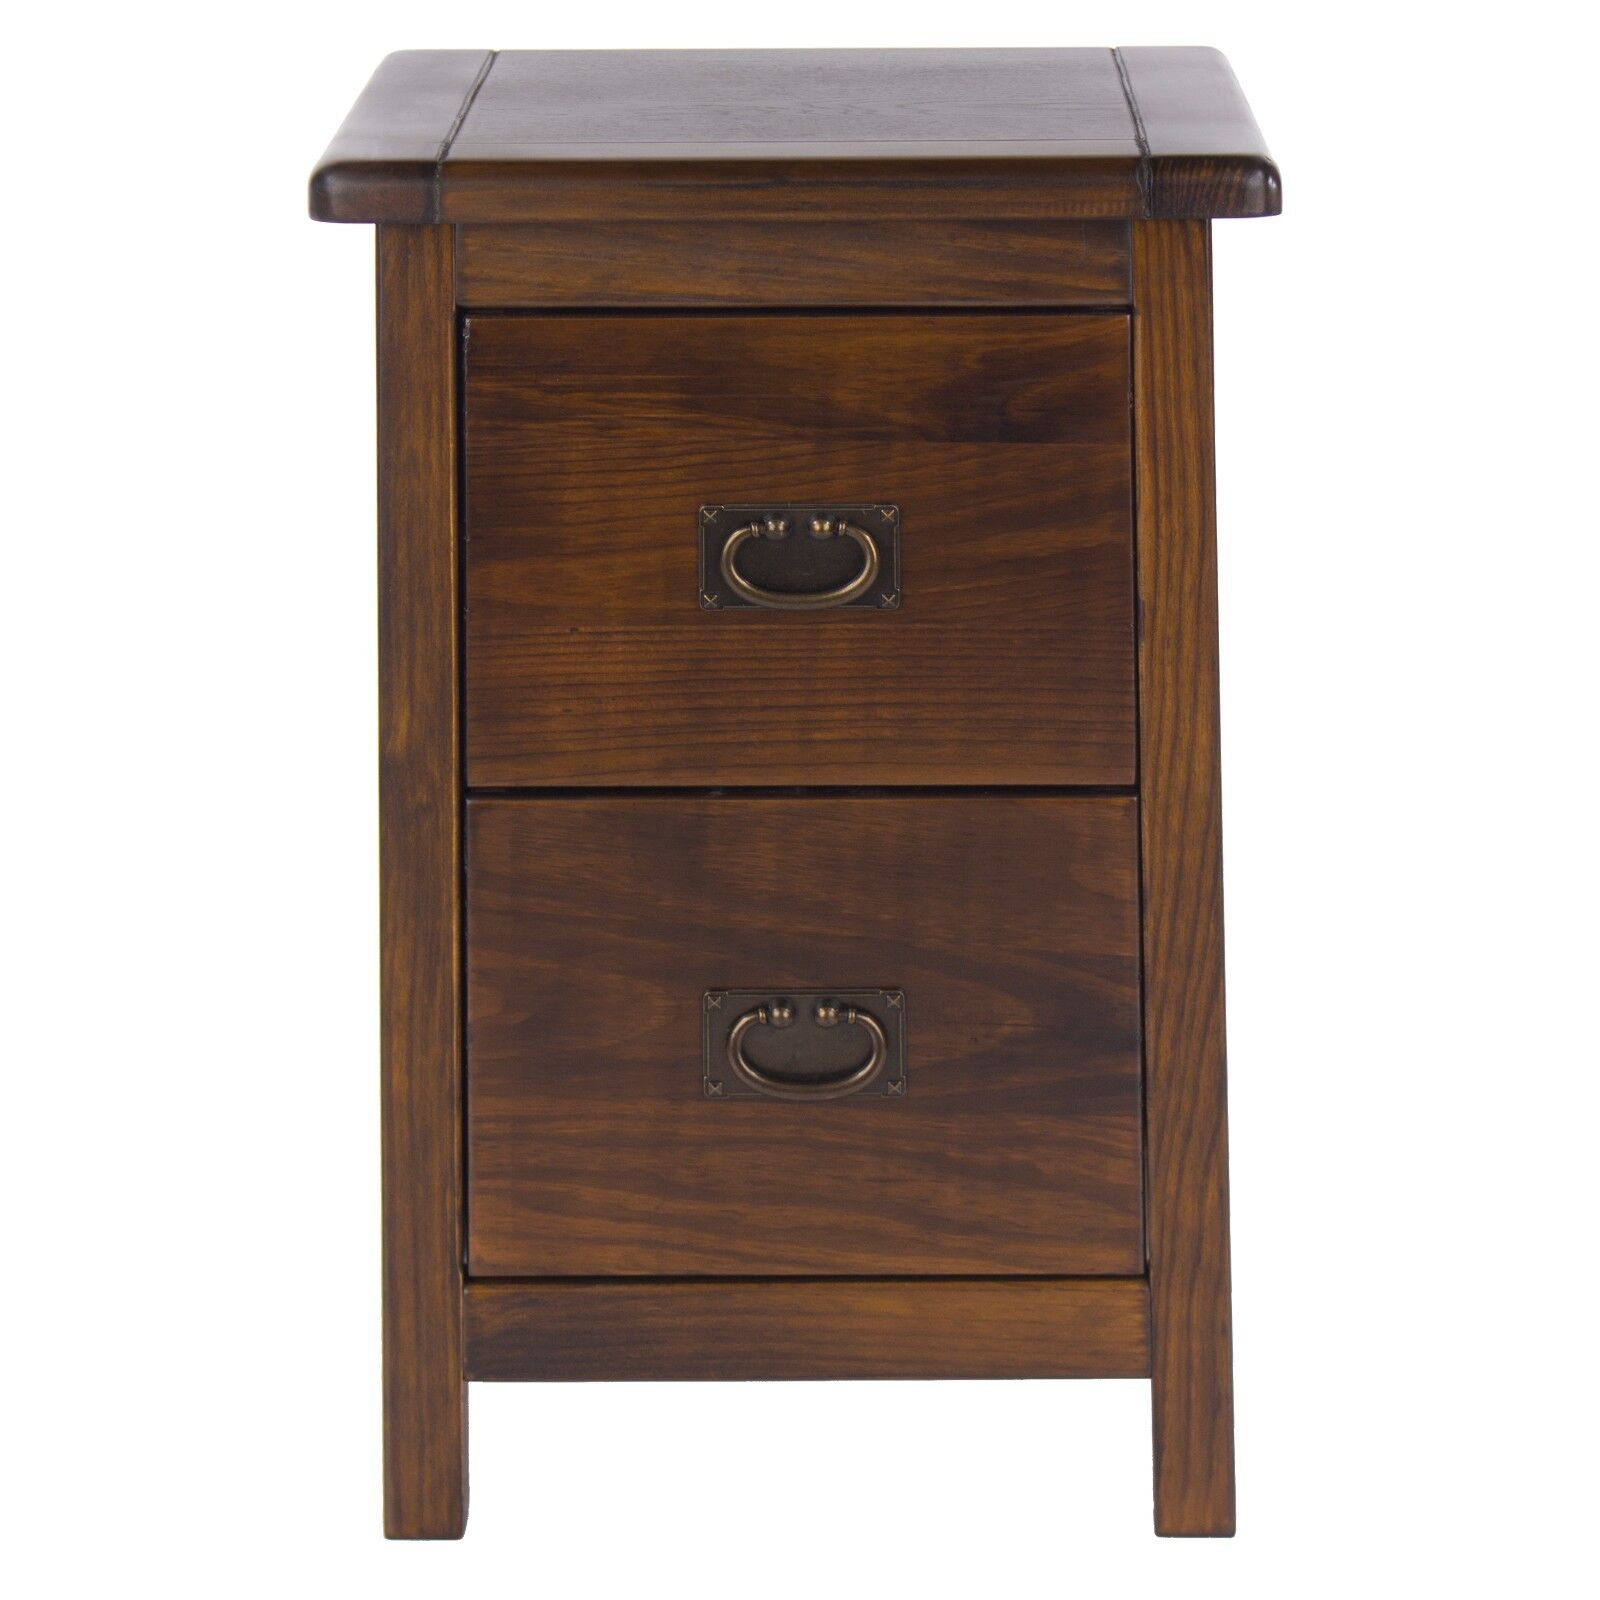 Pair Of Bedside Cabinets Tables Dark Wood Baltia Solid